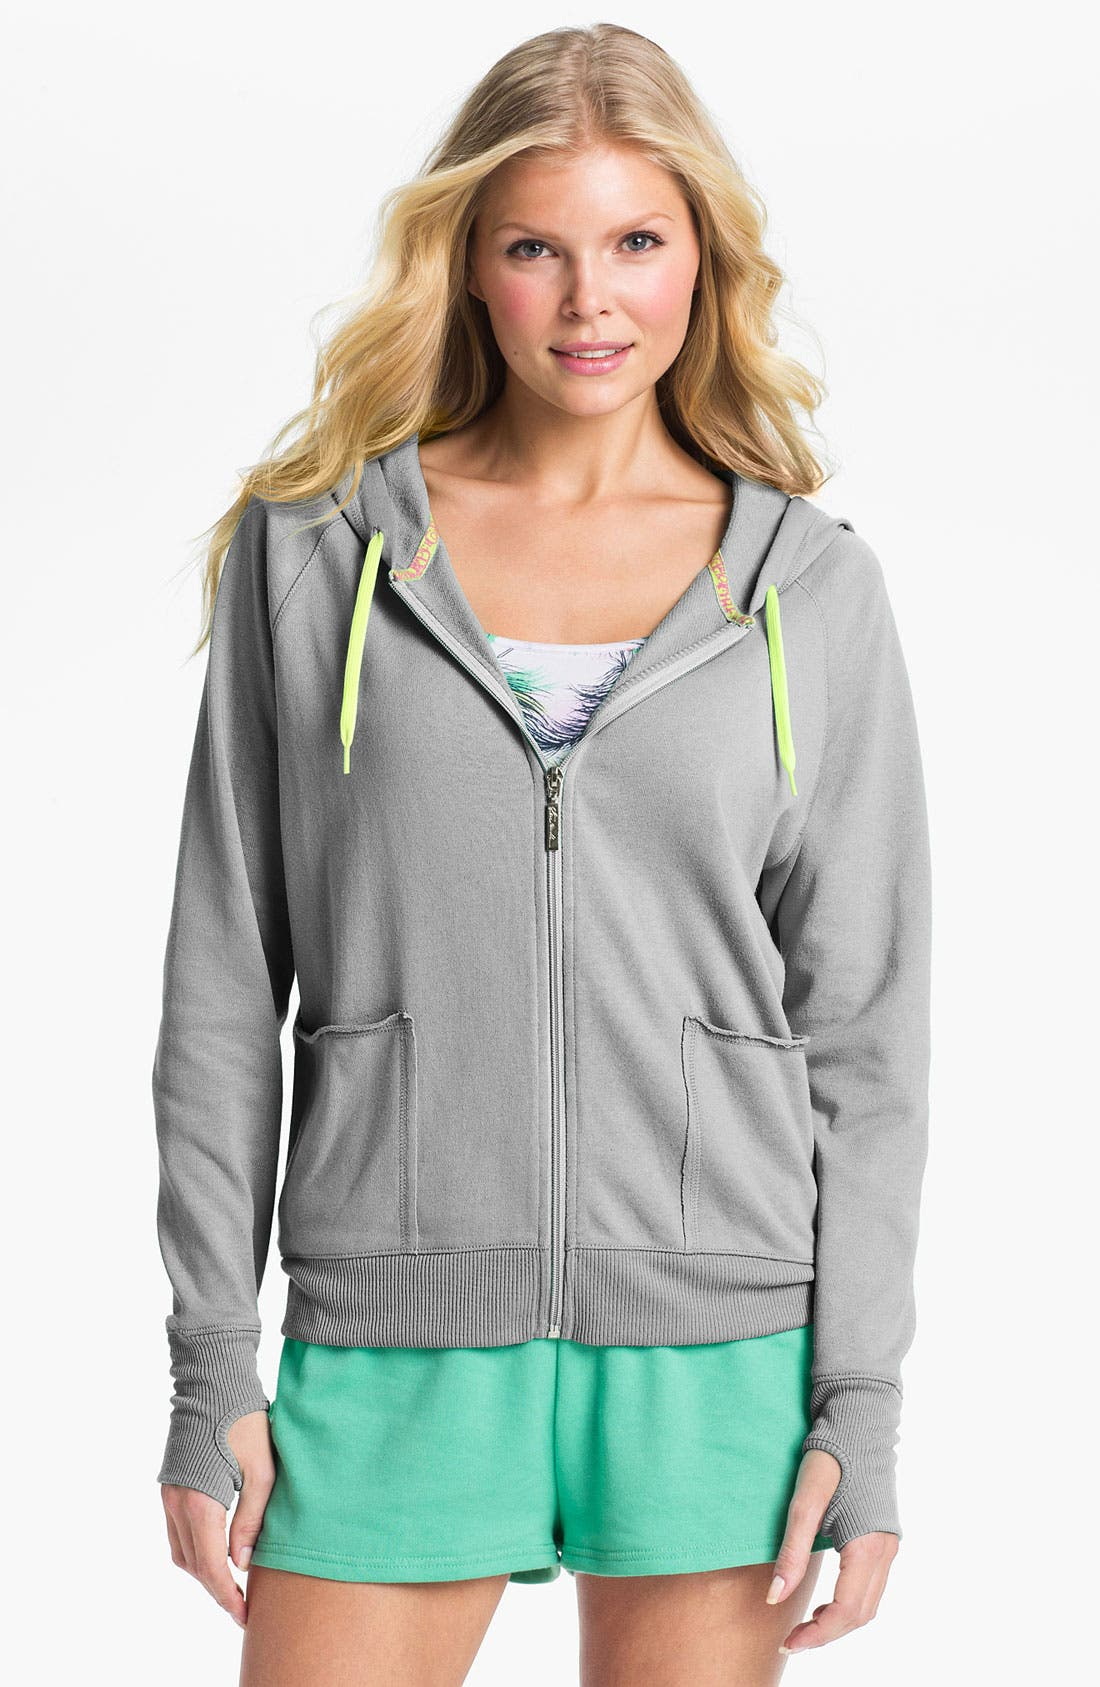 Alternate Image 1 Selected - Steve Madden 'Lounge Love' Zip Hoodie